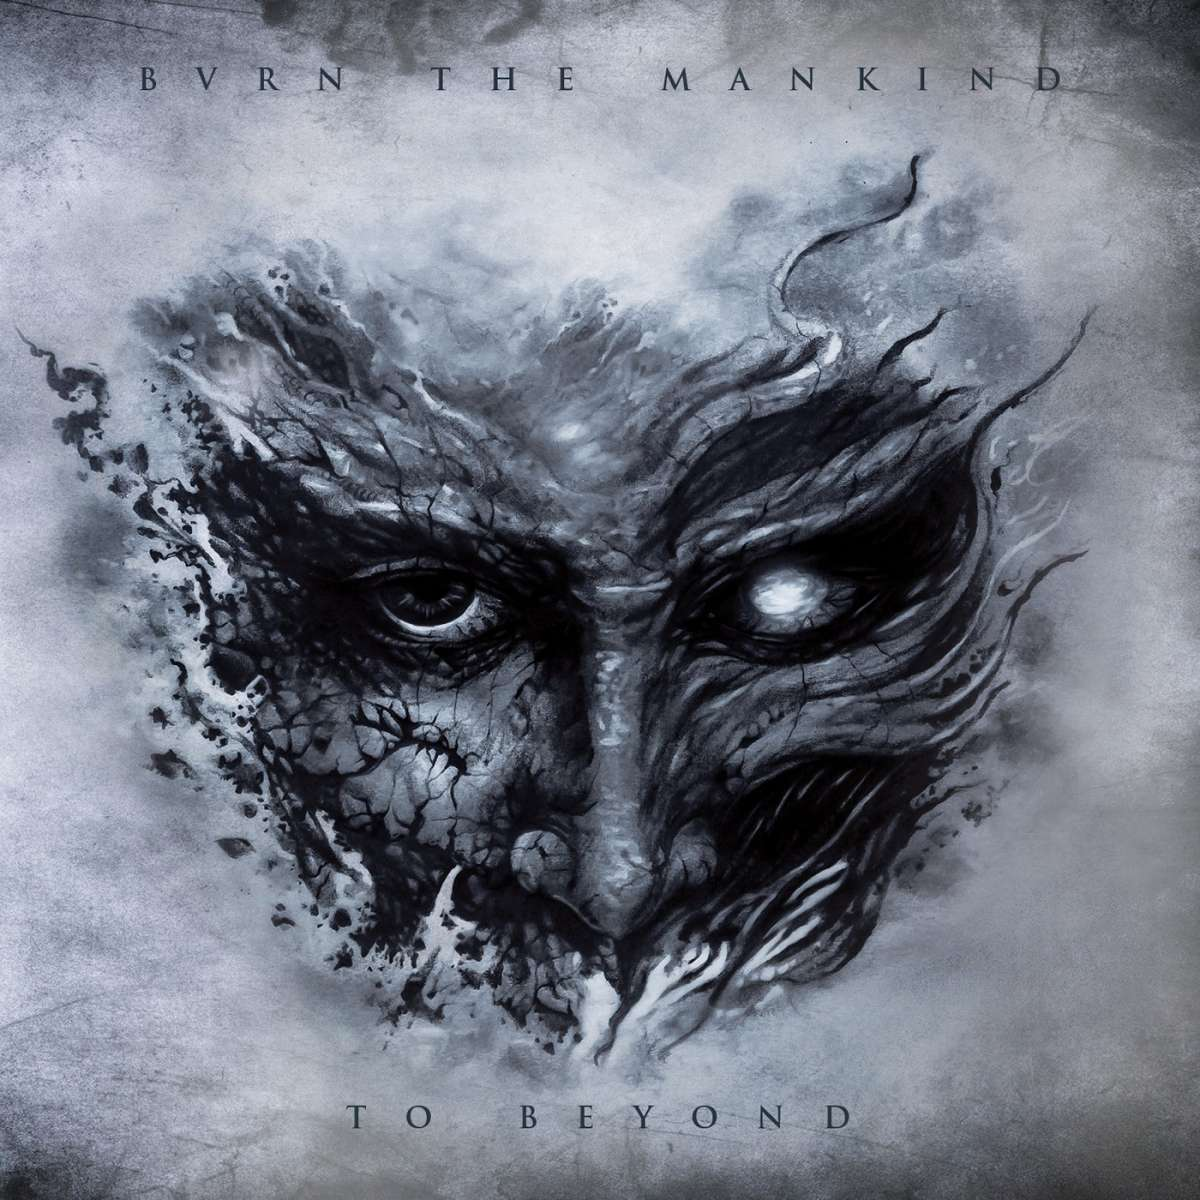 Burn The Mankind – To Beyond